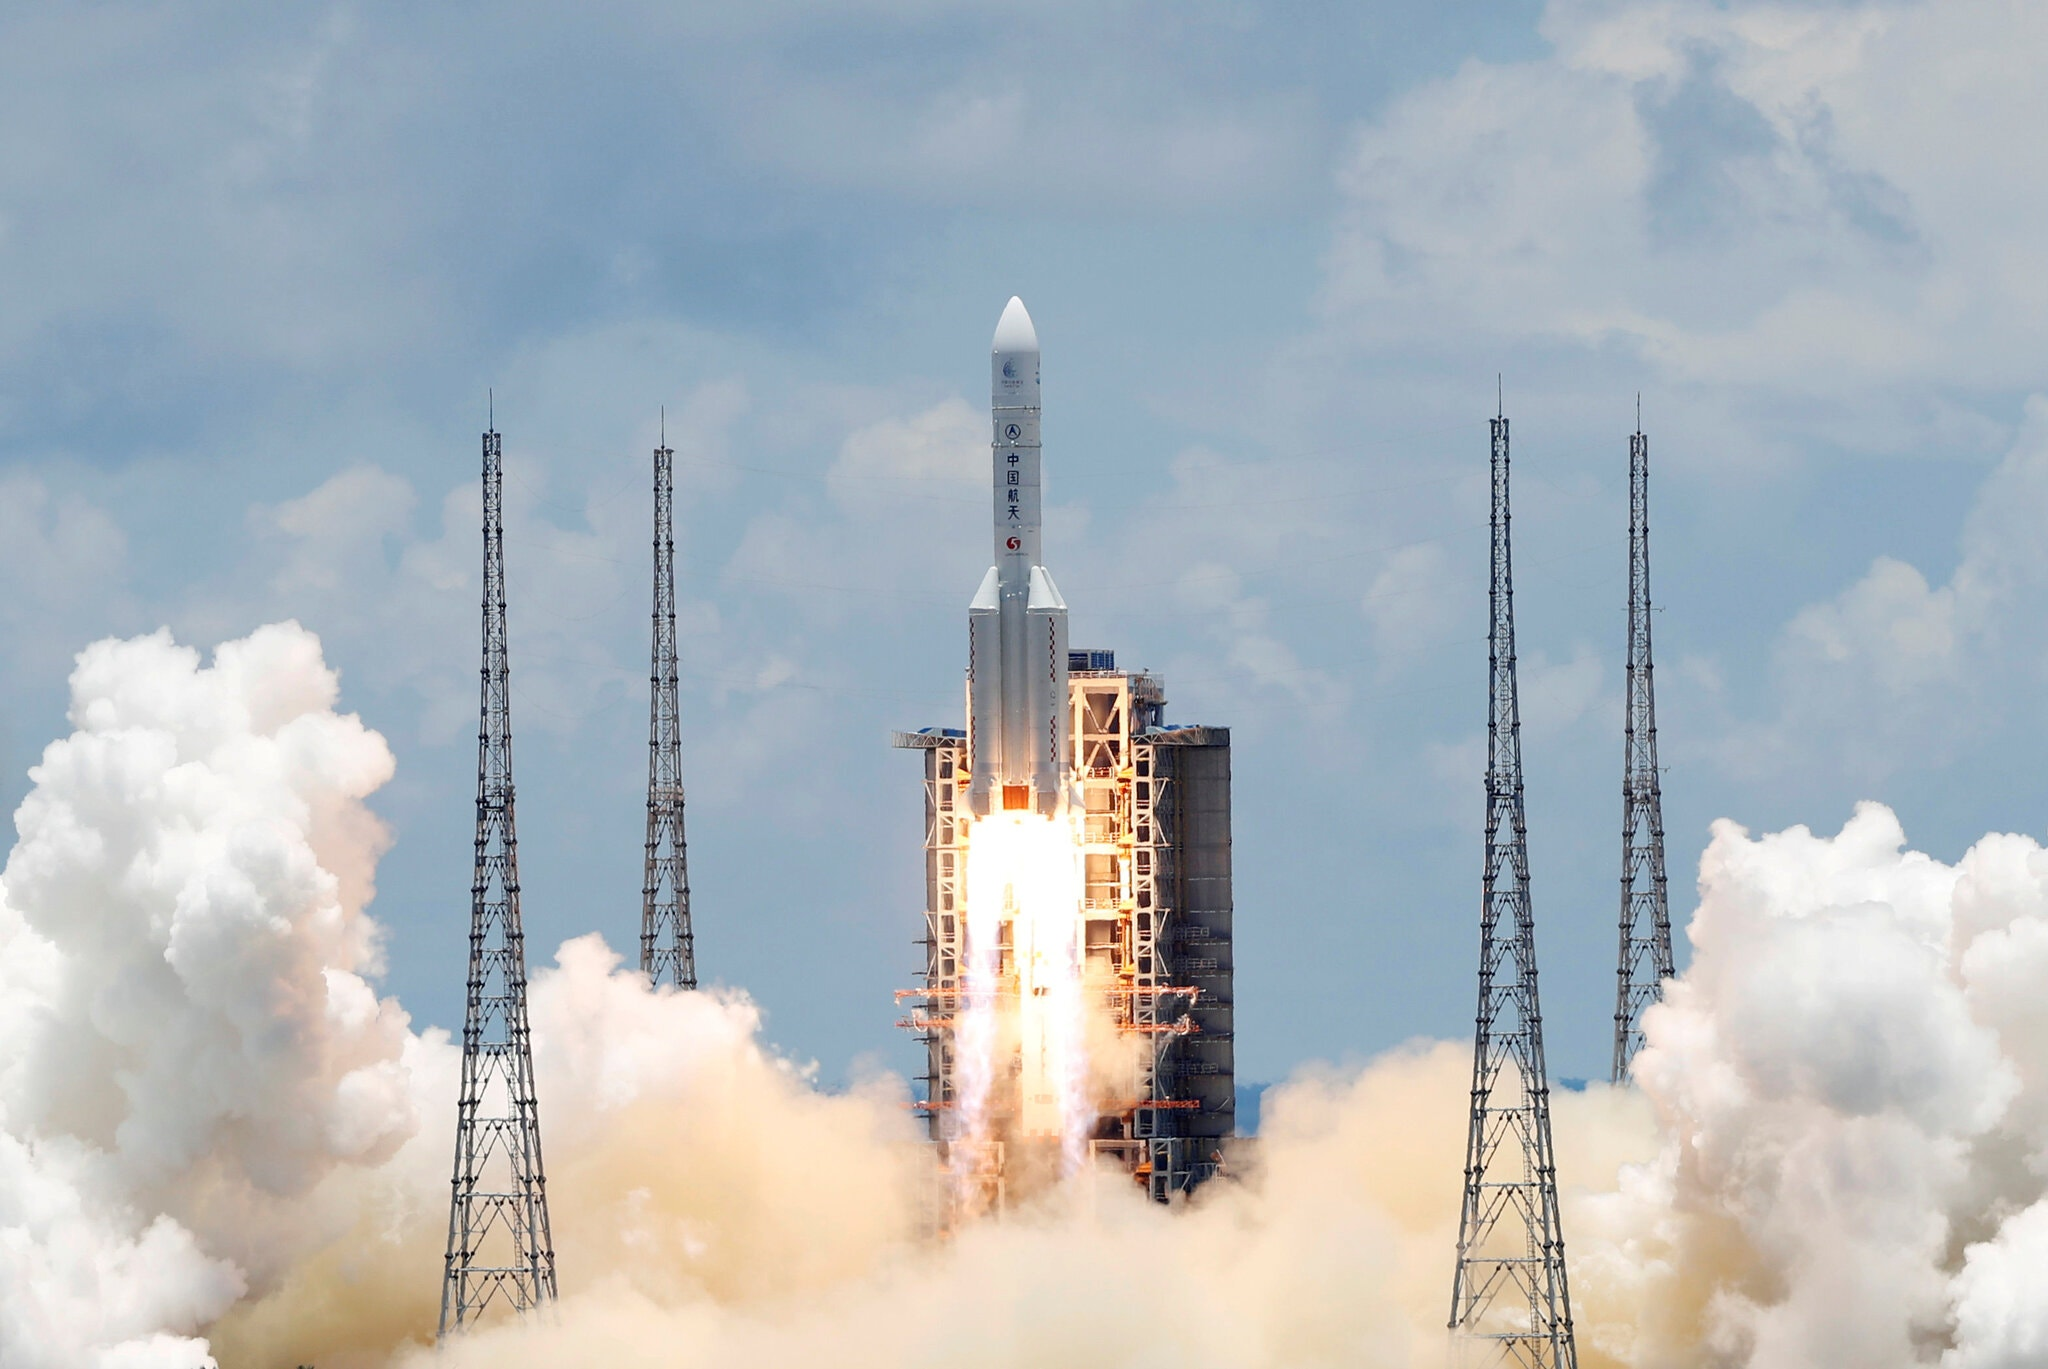 China launches its Tianwen-1 mission to Mars, July 23, 2020. The Long March 5 rocket was developed by China Academy of Launch Vehicle Technology, a subsidiary of CASC. (Carlos Garcia Rawlins/Reuters)